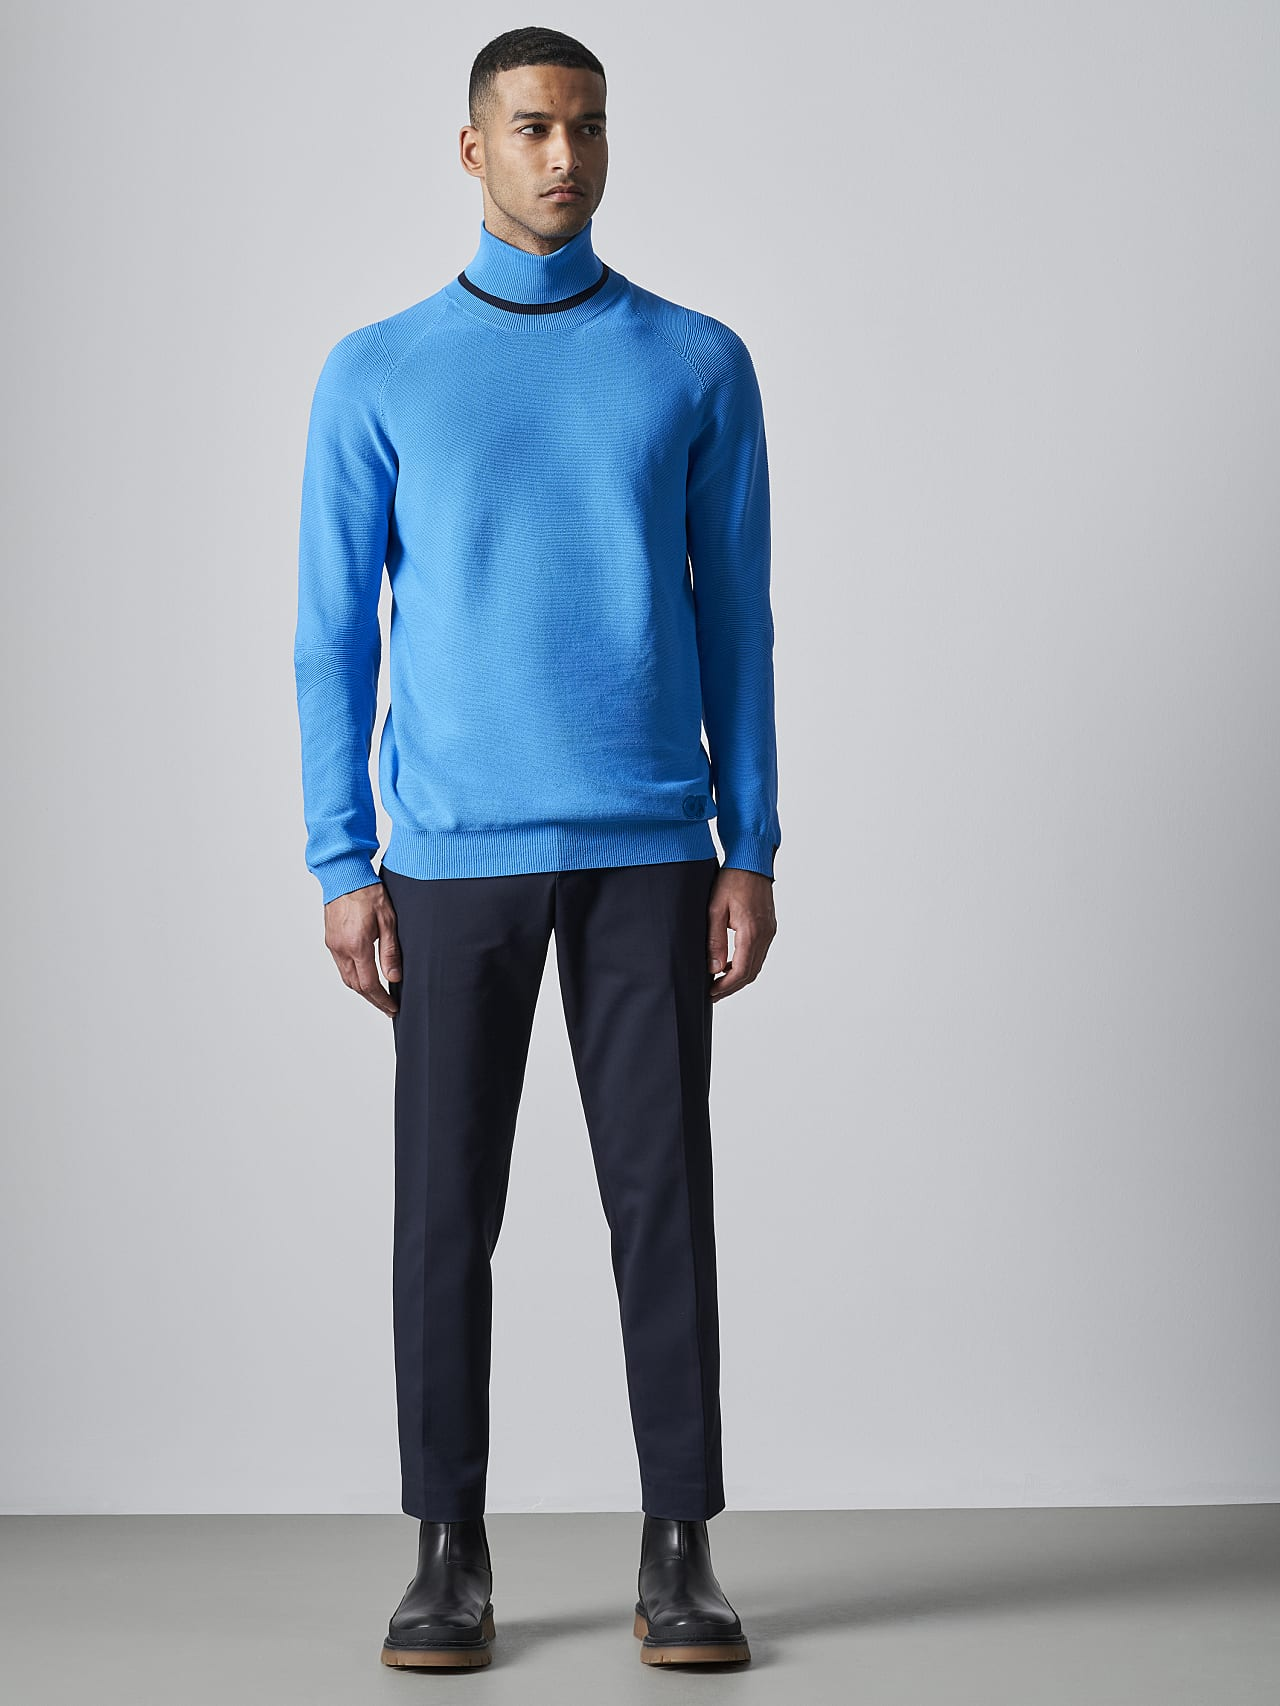 FUZZO V1.Y5.02 Seamless 3D Knit Roll-Neck Jumper blue Front Alpha Tauri